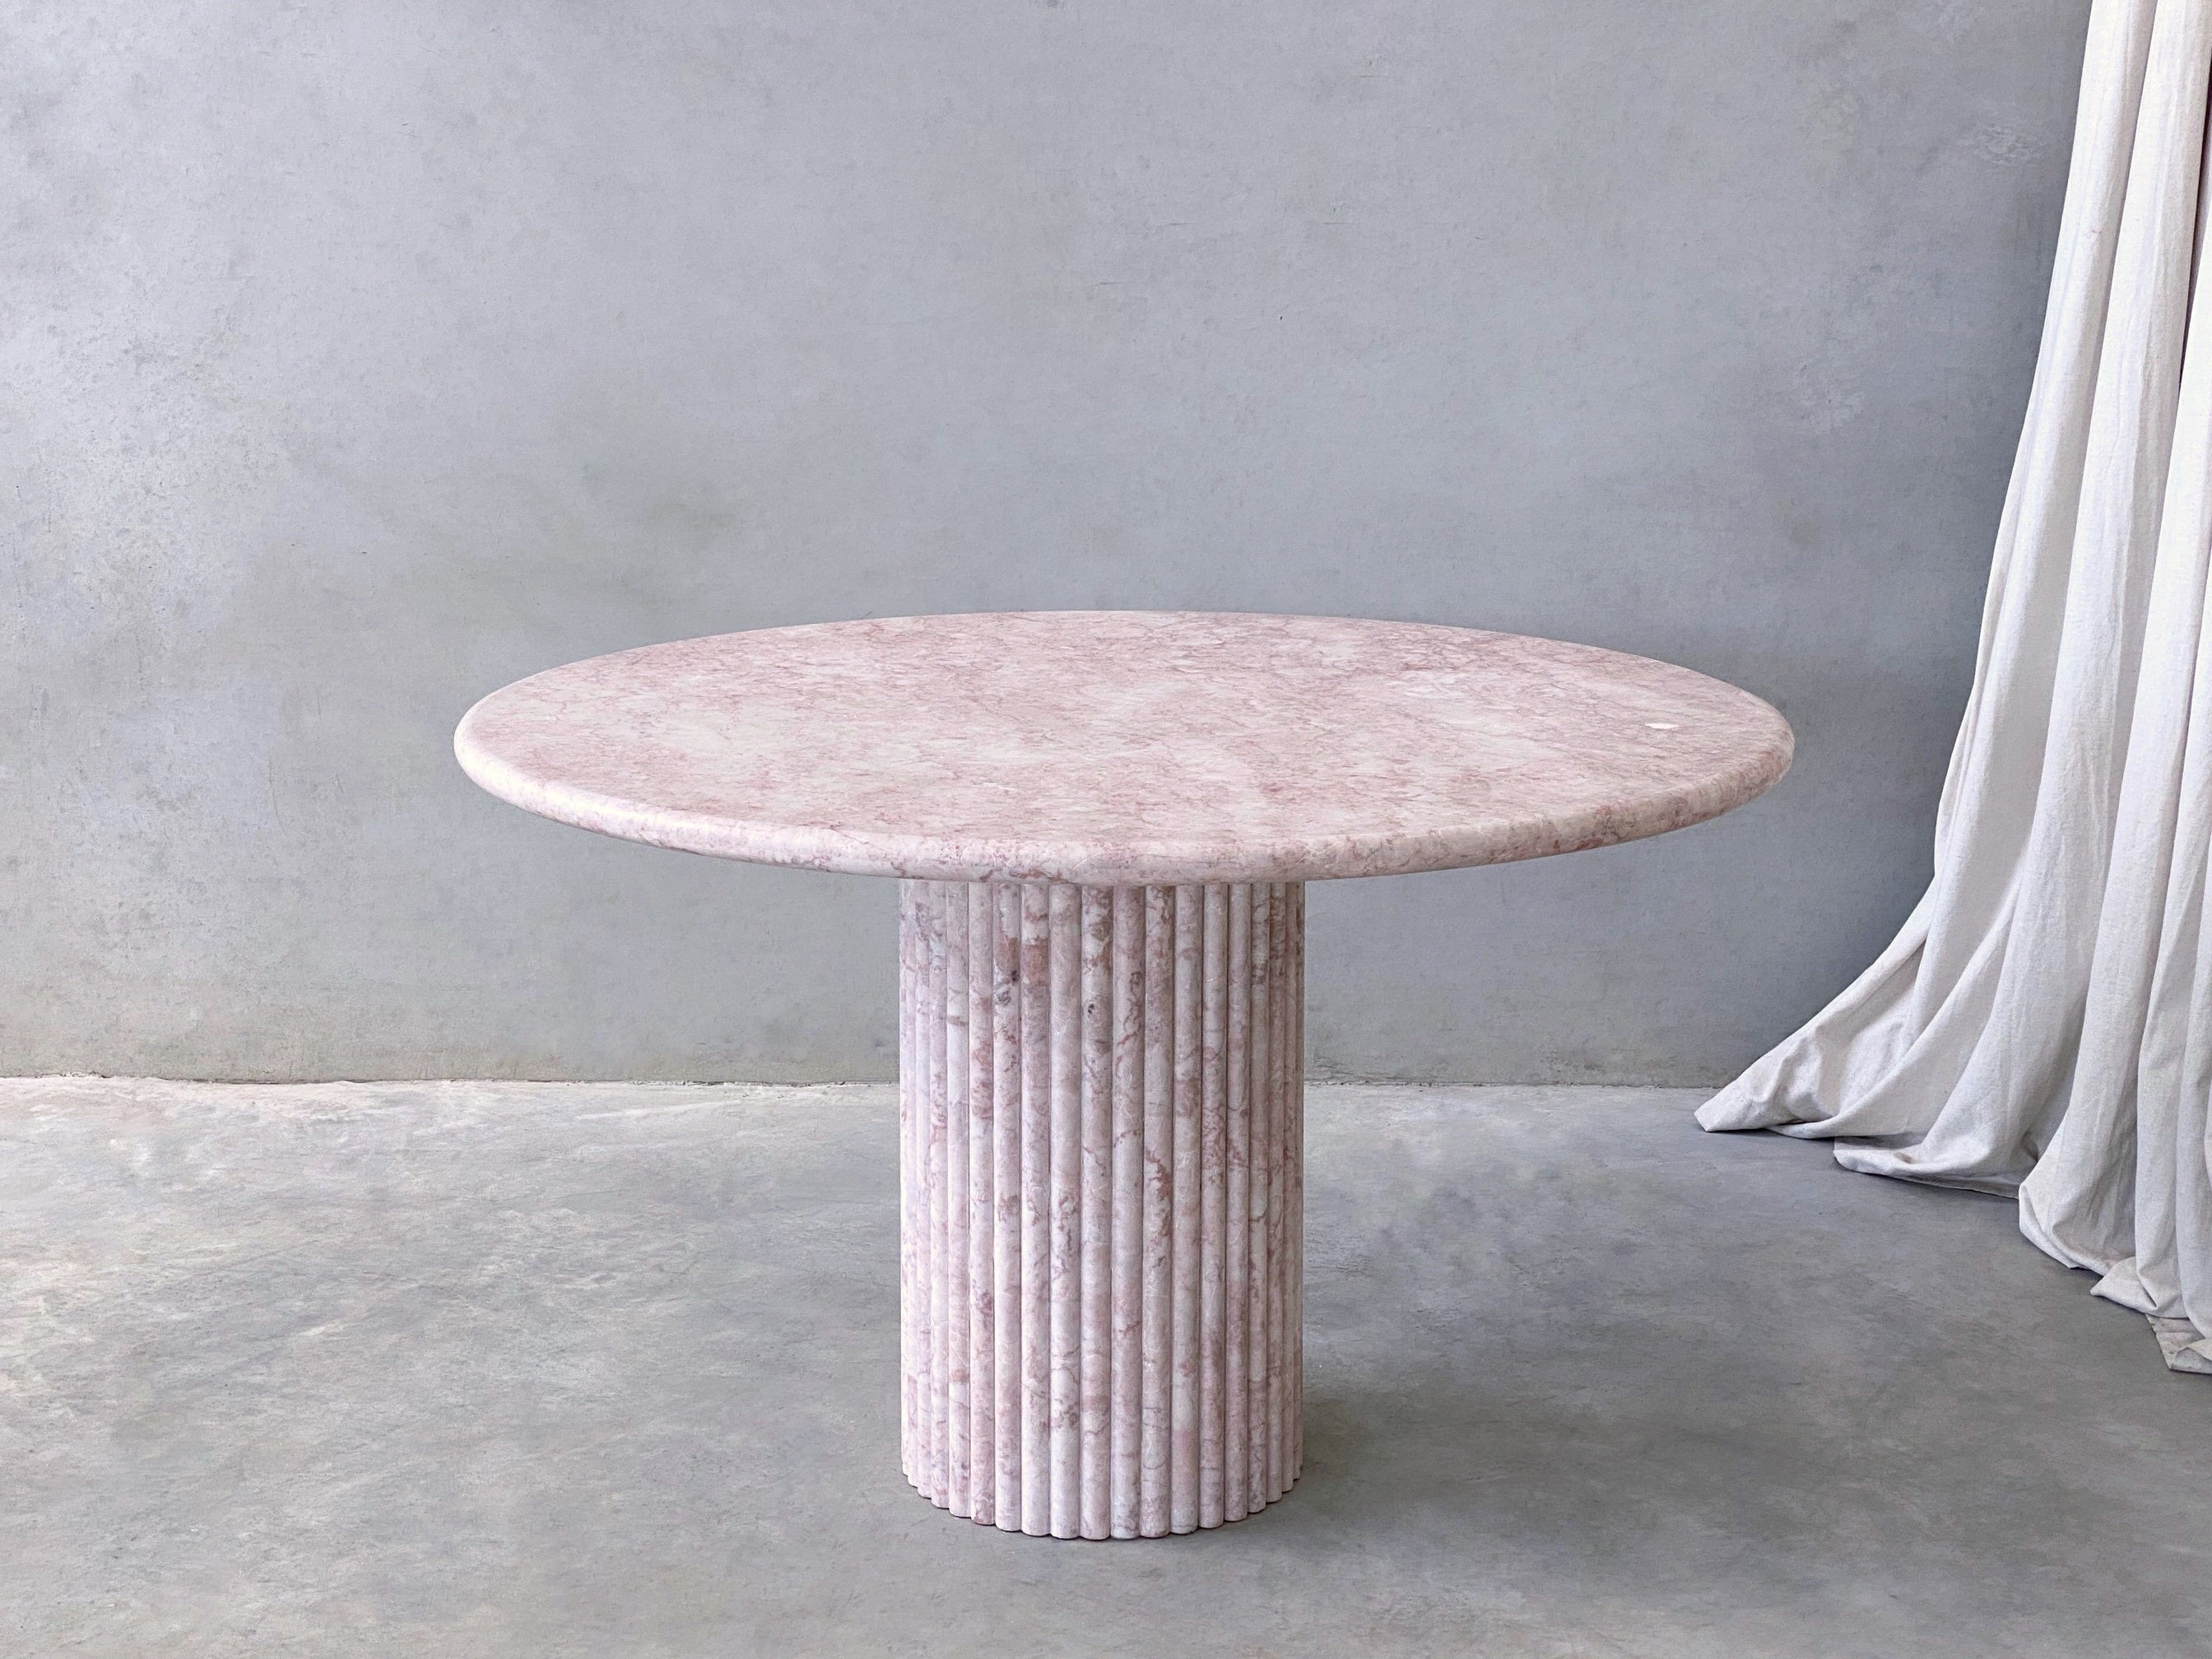 Rosetta Round Dining Table, Rosa Vene. The rounded edges and curved round shape married with the soft textures and pattern of veins throughout brings dimension and an elevated element of curated detail. Paired with fluted, scalloped cylindrical legs that are moveable so placement can be adjusted anyway desired.